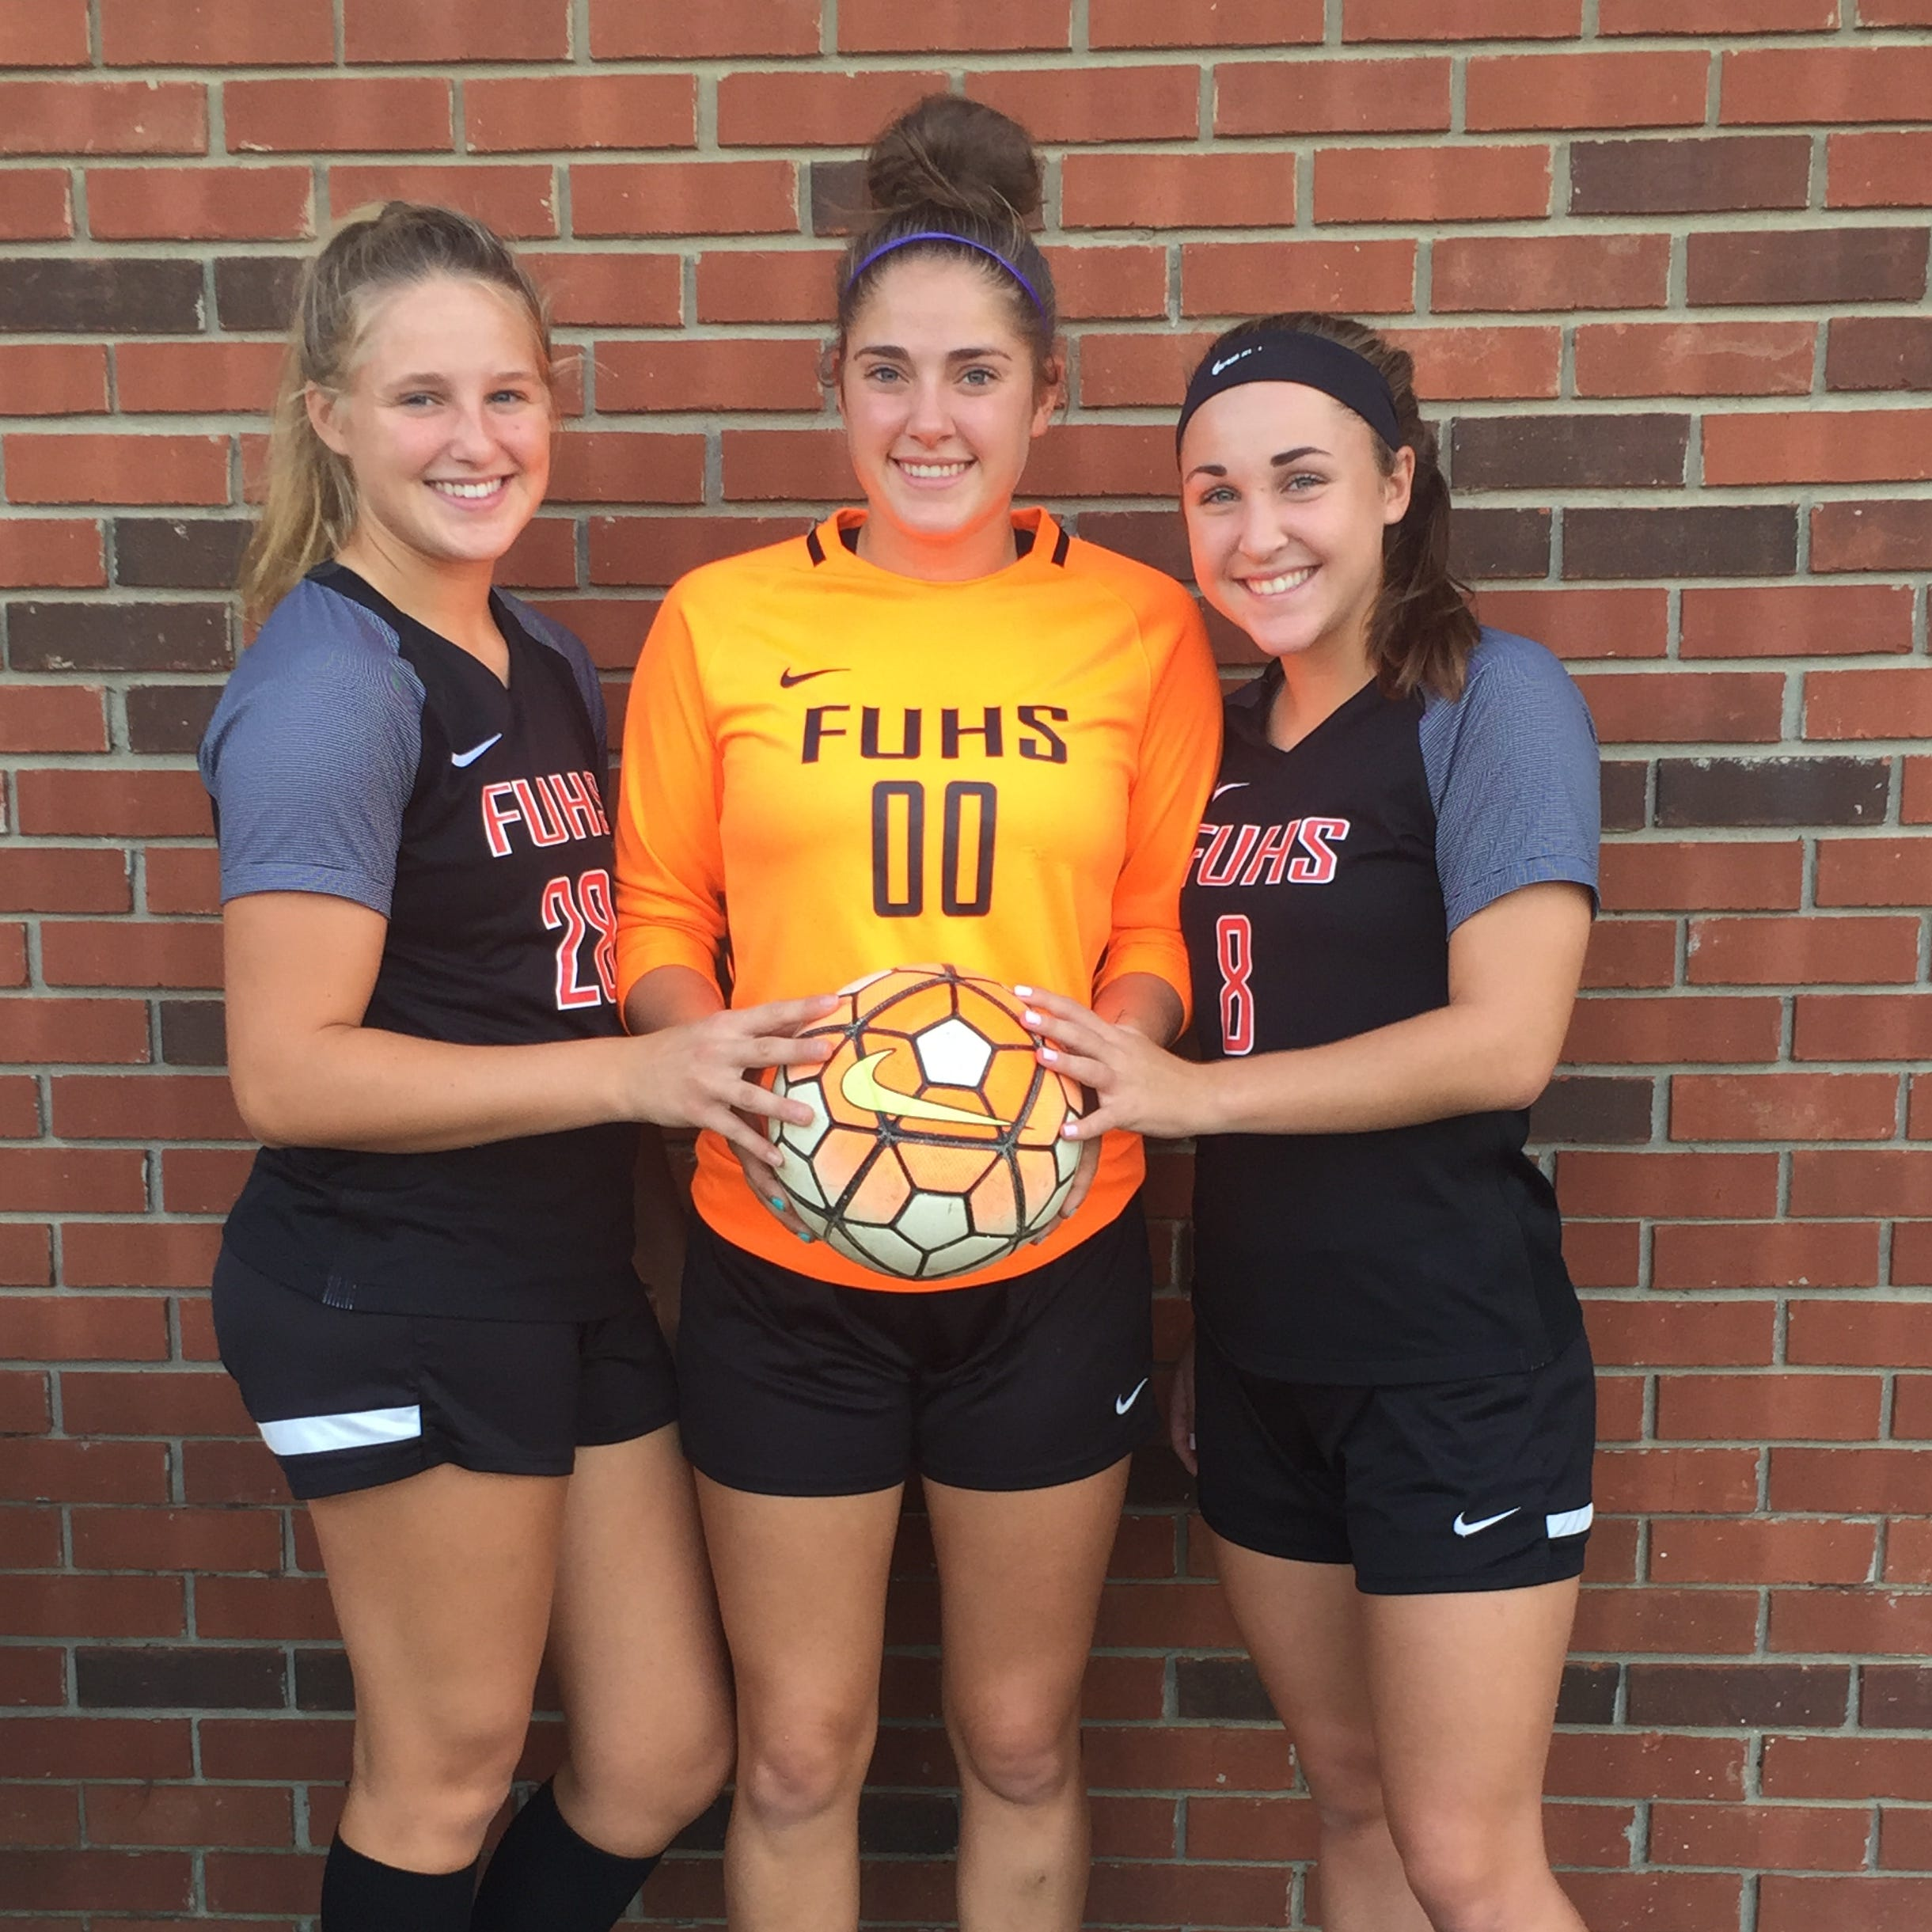 GIRLS SOCCER: Fairfield Union embraces lofty expectations heading into tournament